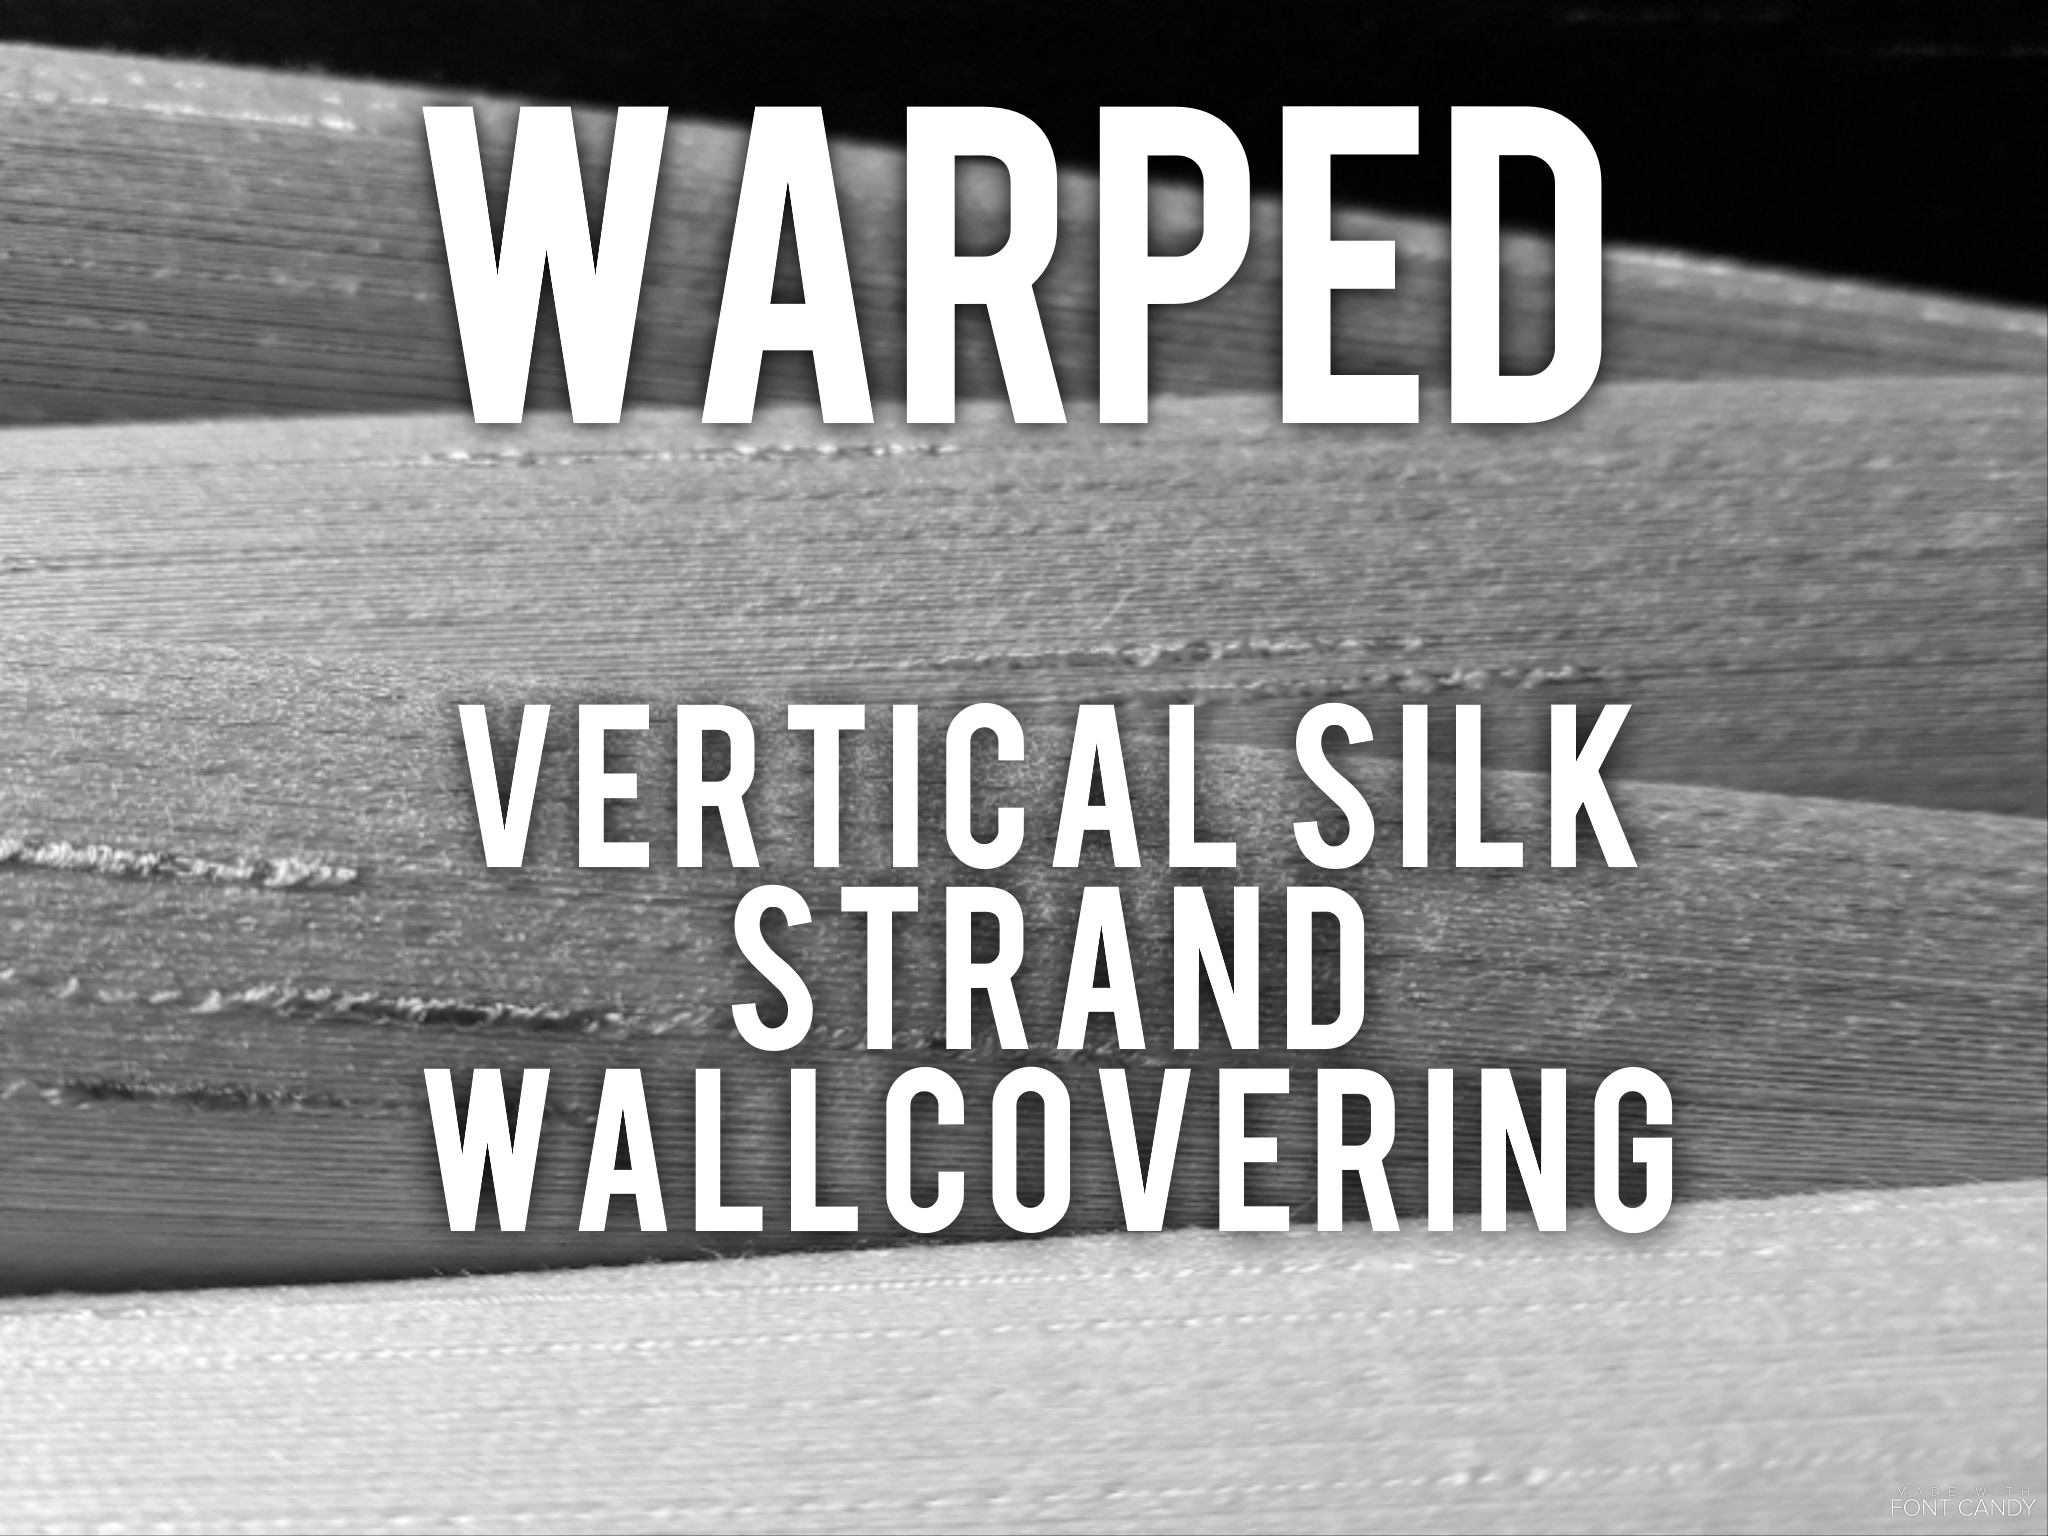 Warped - silk strand slubbed wallcovering